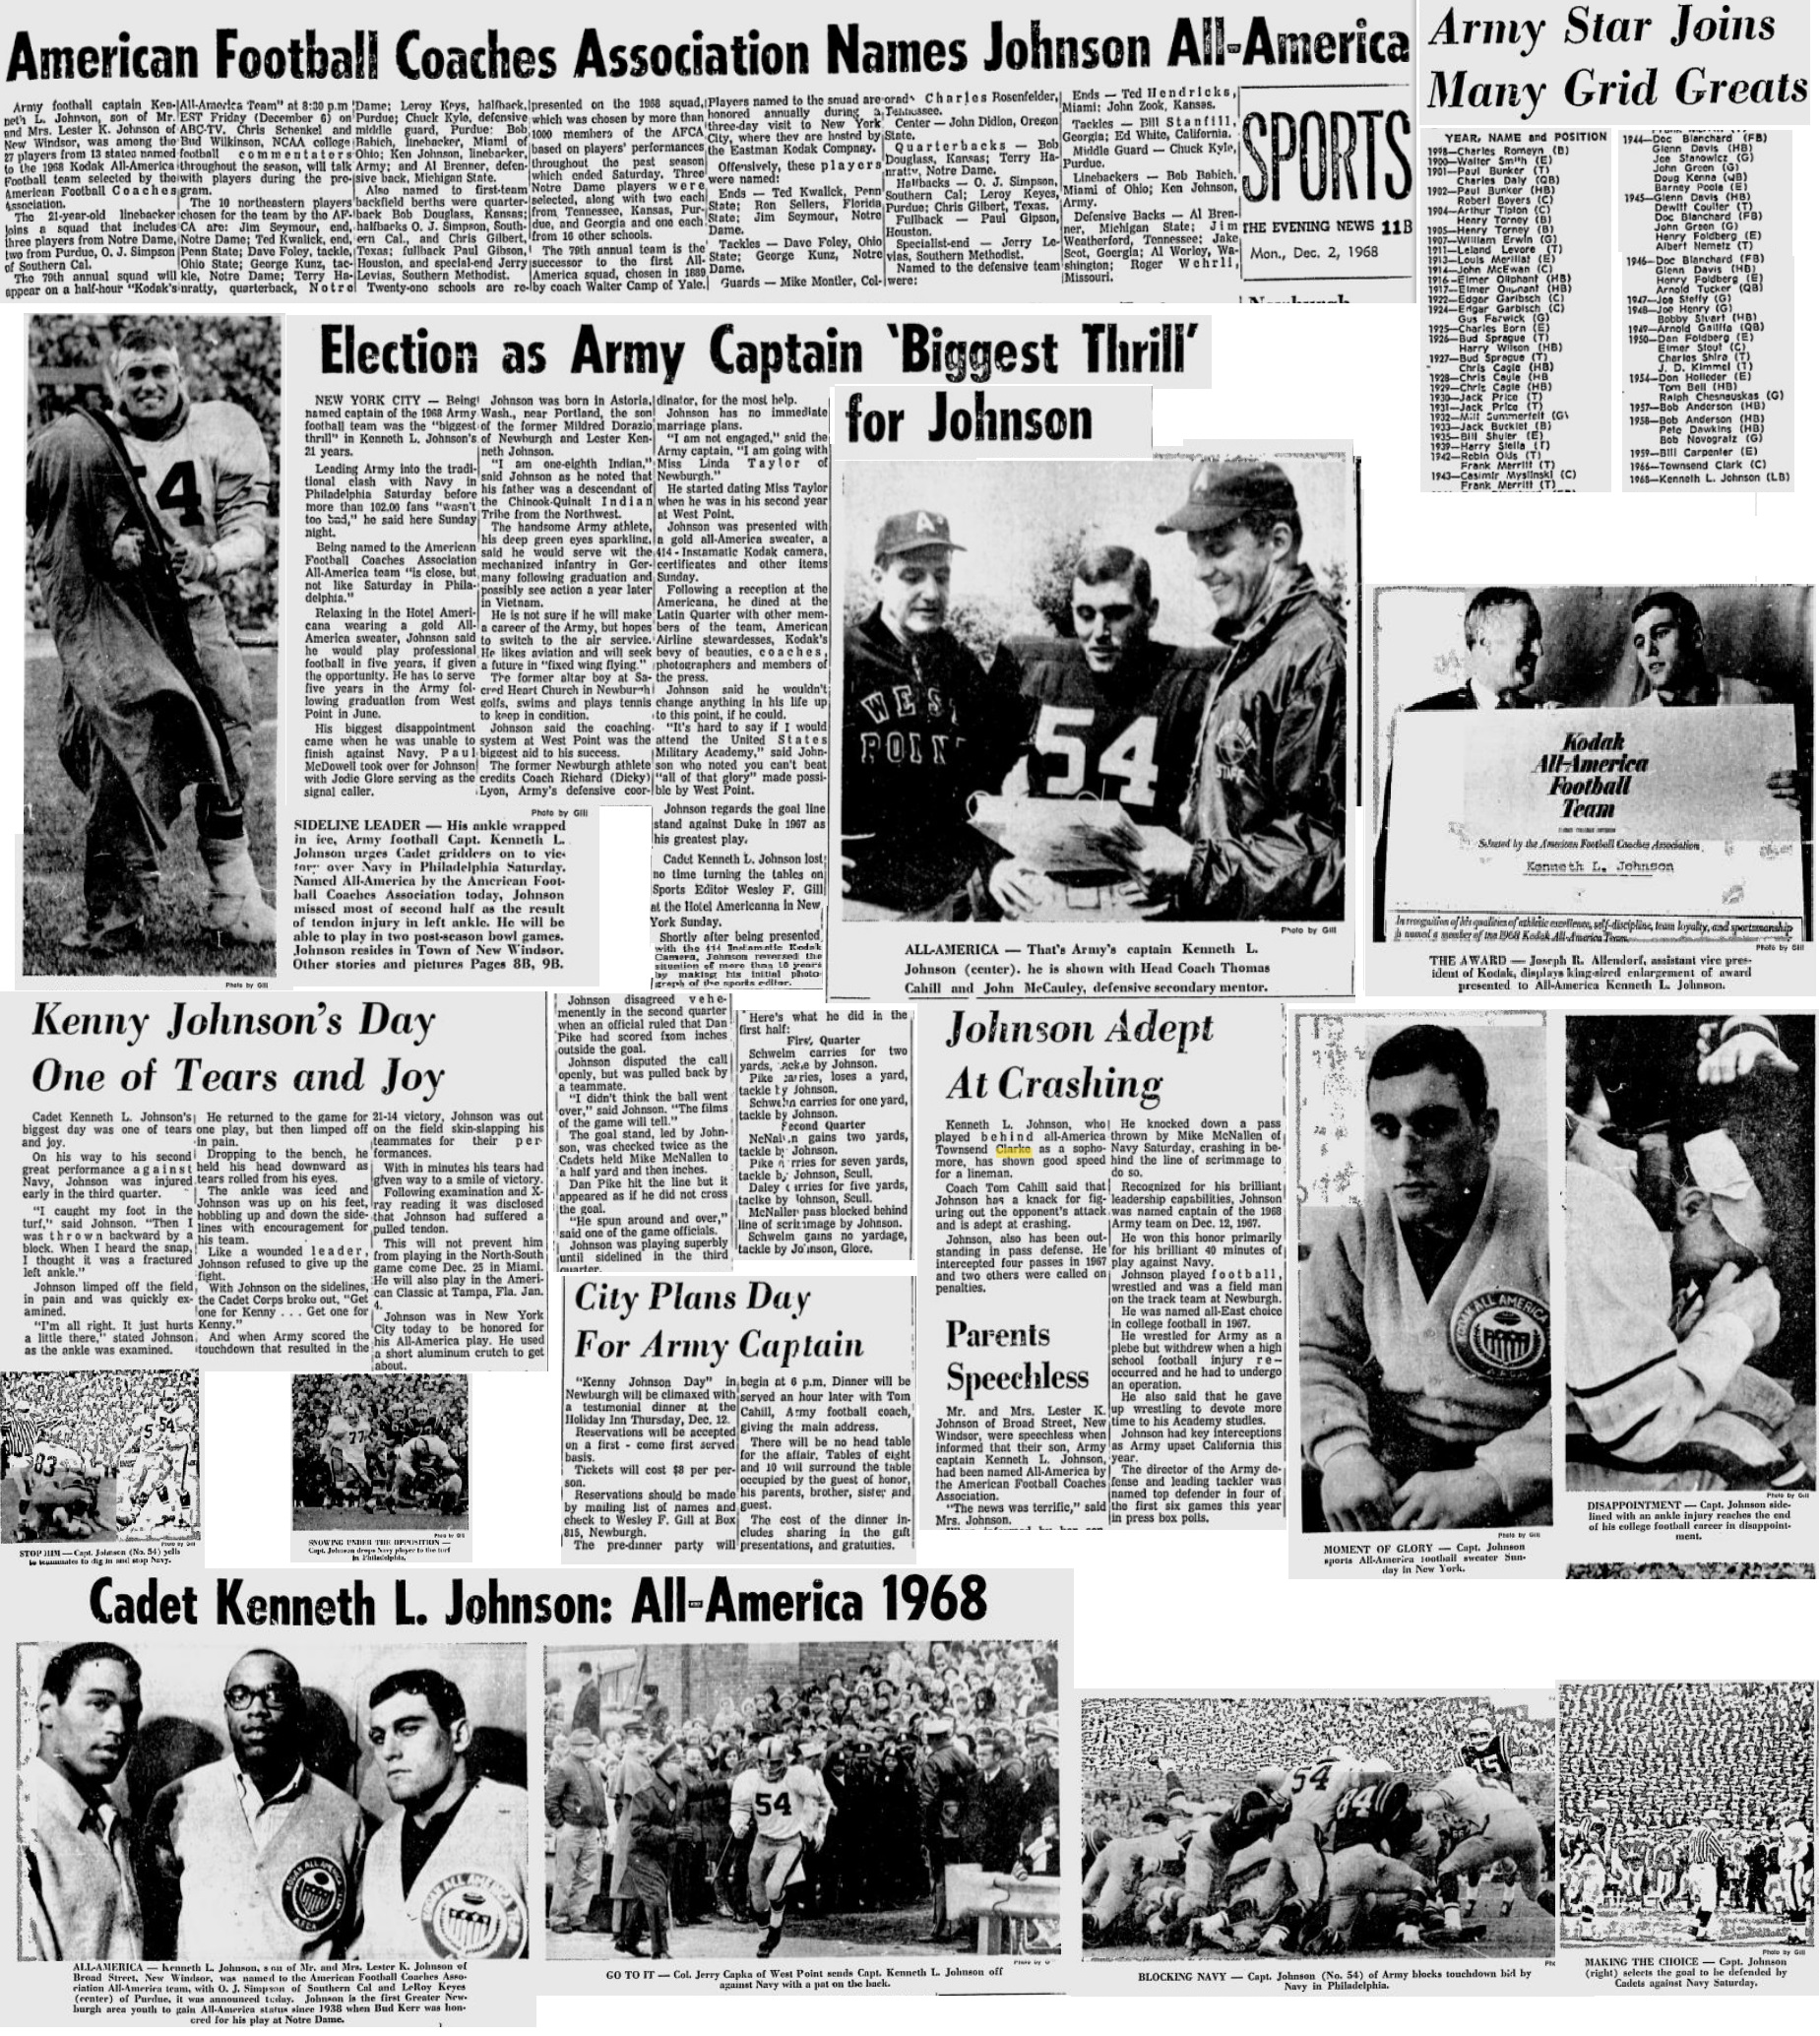 armyfb_1968_kenjohnson_eveningnews_dec21968